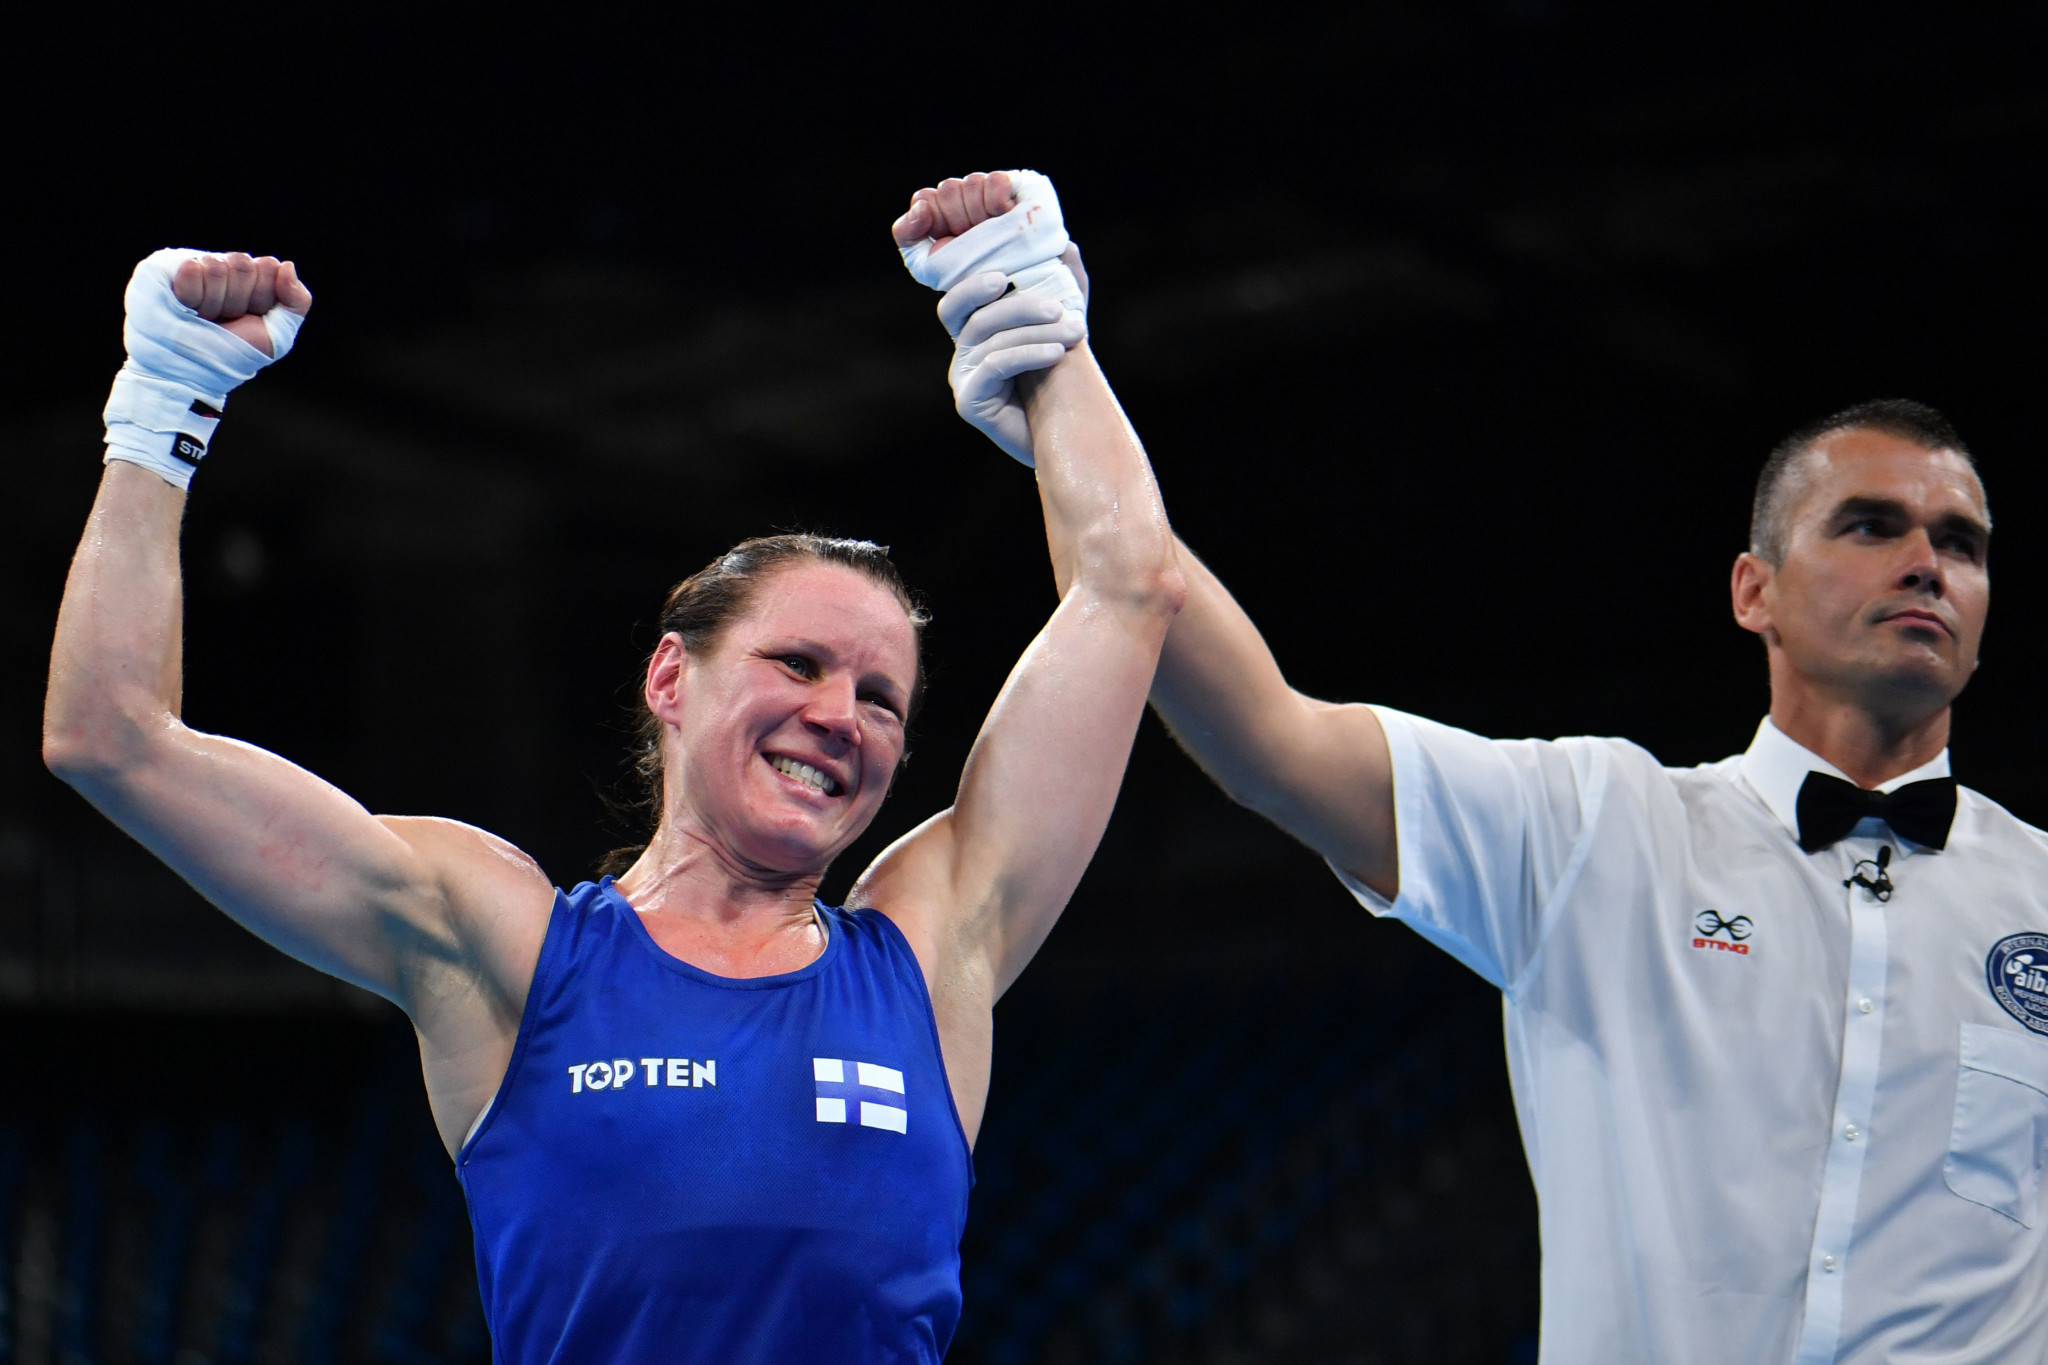 Finland's Mira Potkonen claimed gold in the women's 60kg lightweight competition ©Getty Images